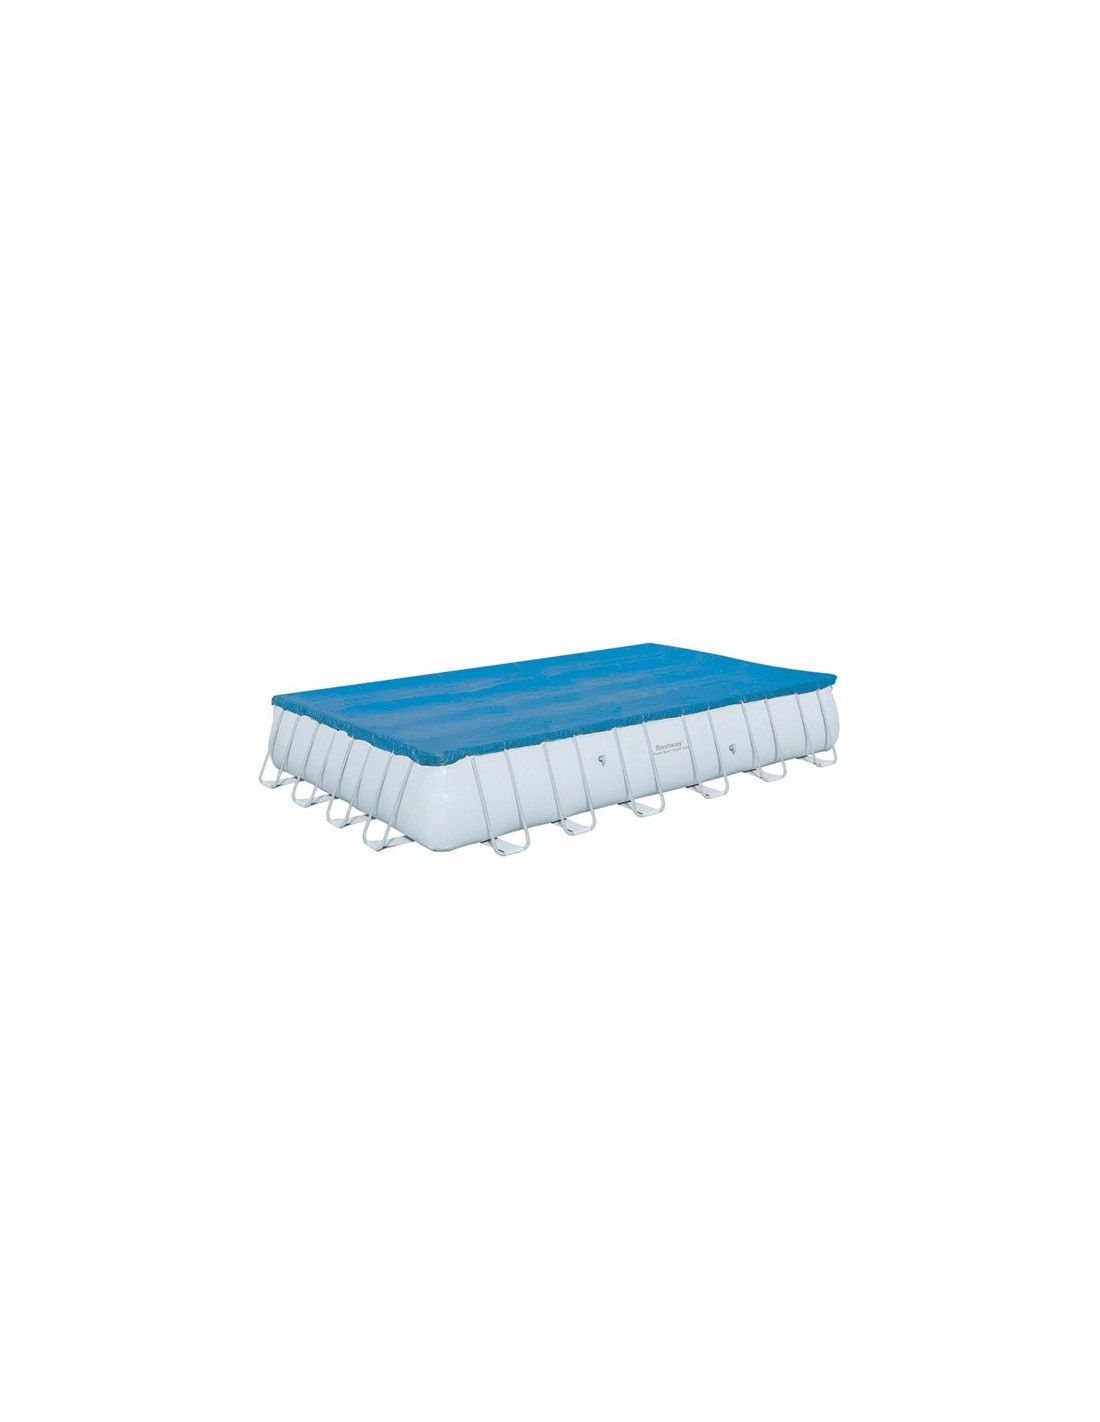 Piscine rectangulaire tubulaire bestway avec filtre sable - Piscine bestway rectangulaire ...